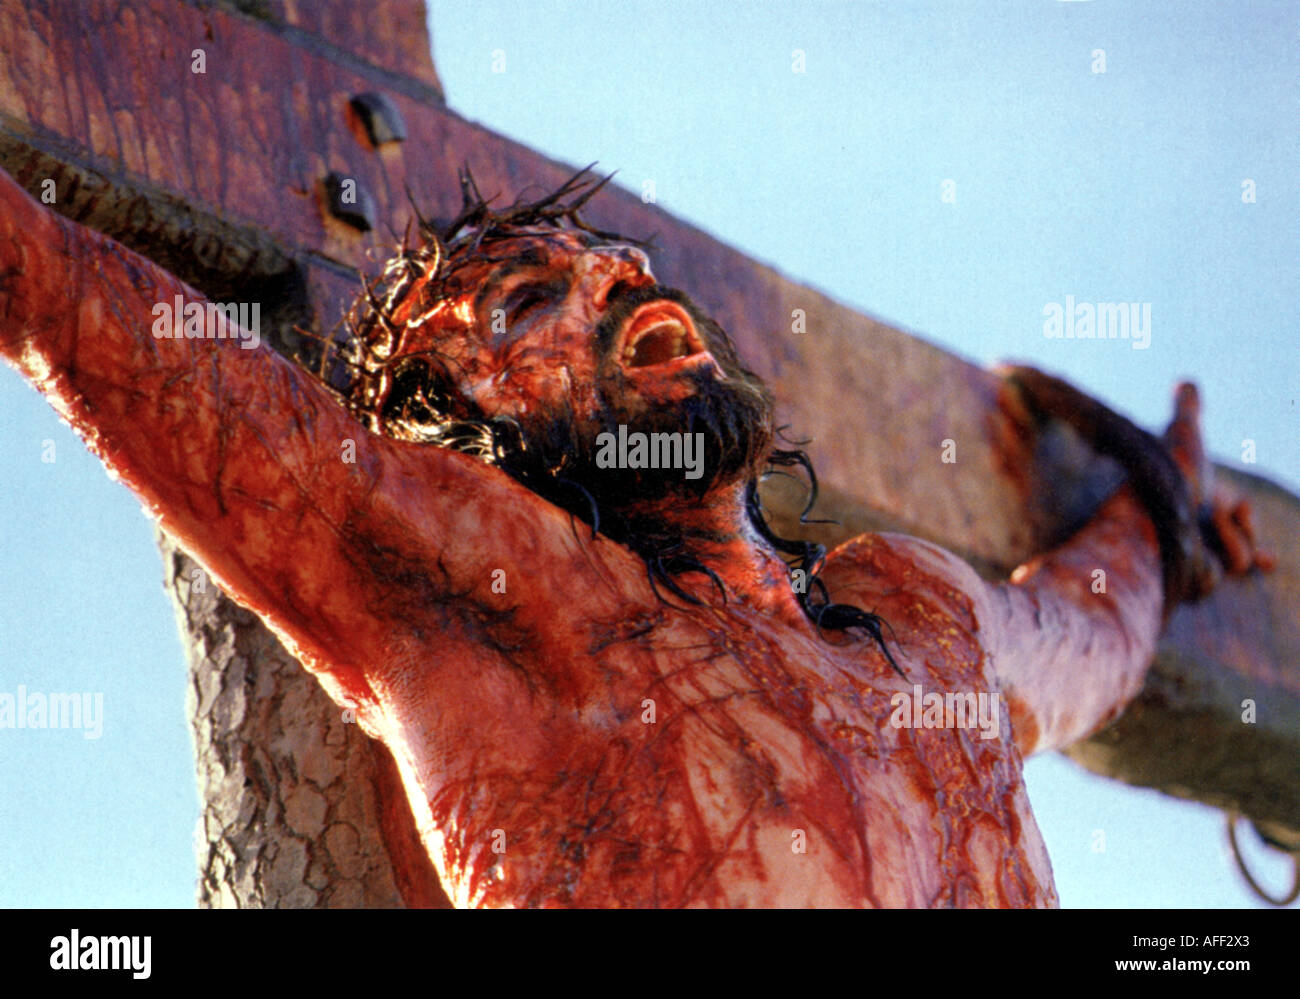 Download the passion of the christ movie.